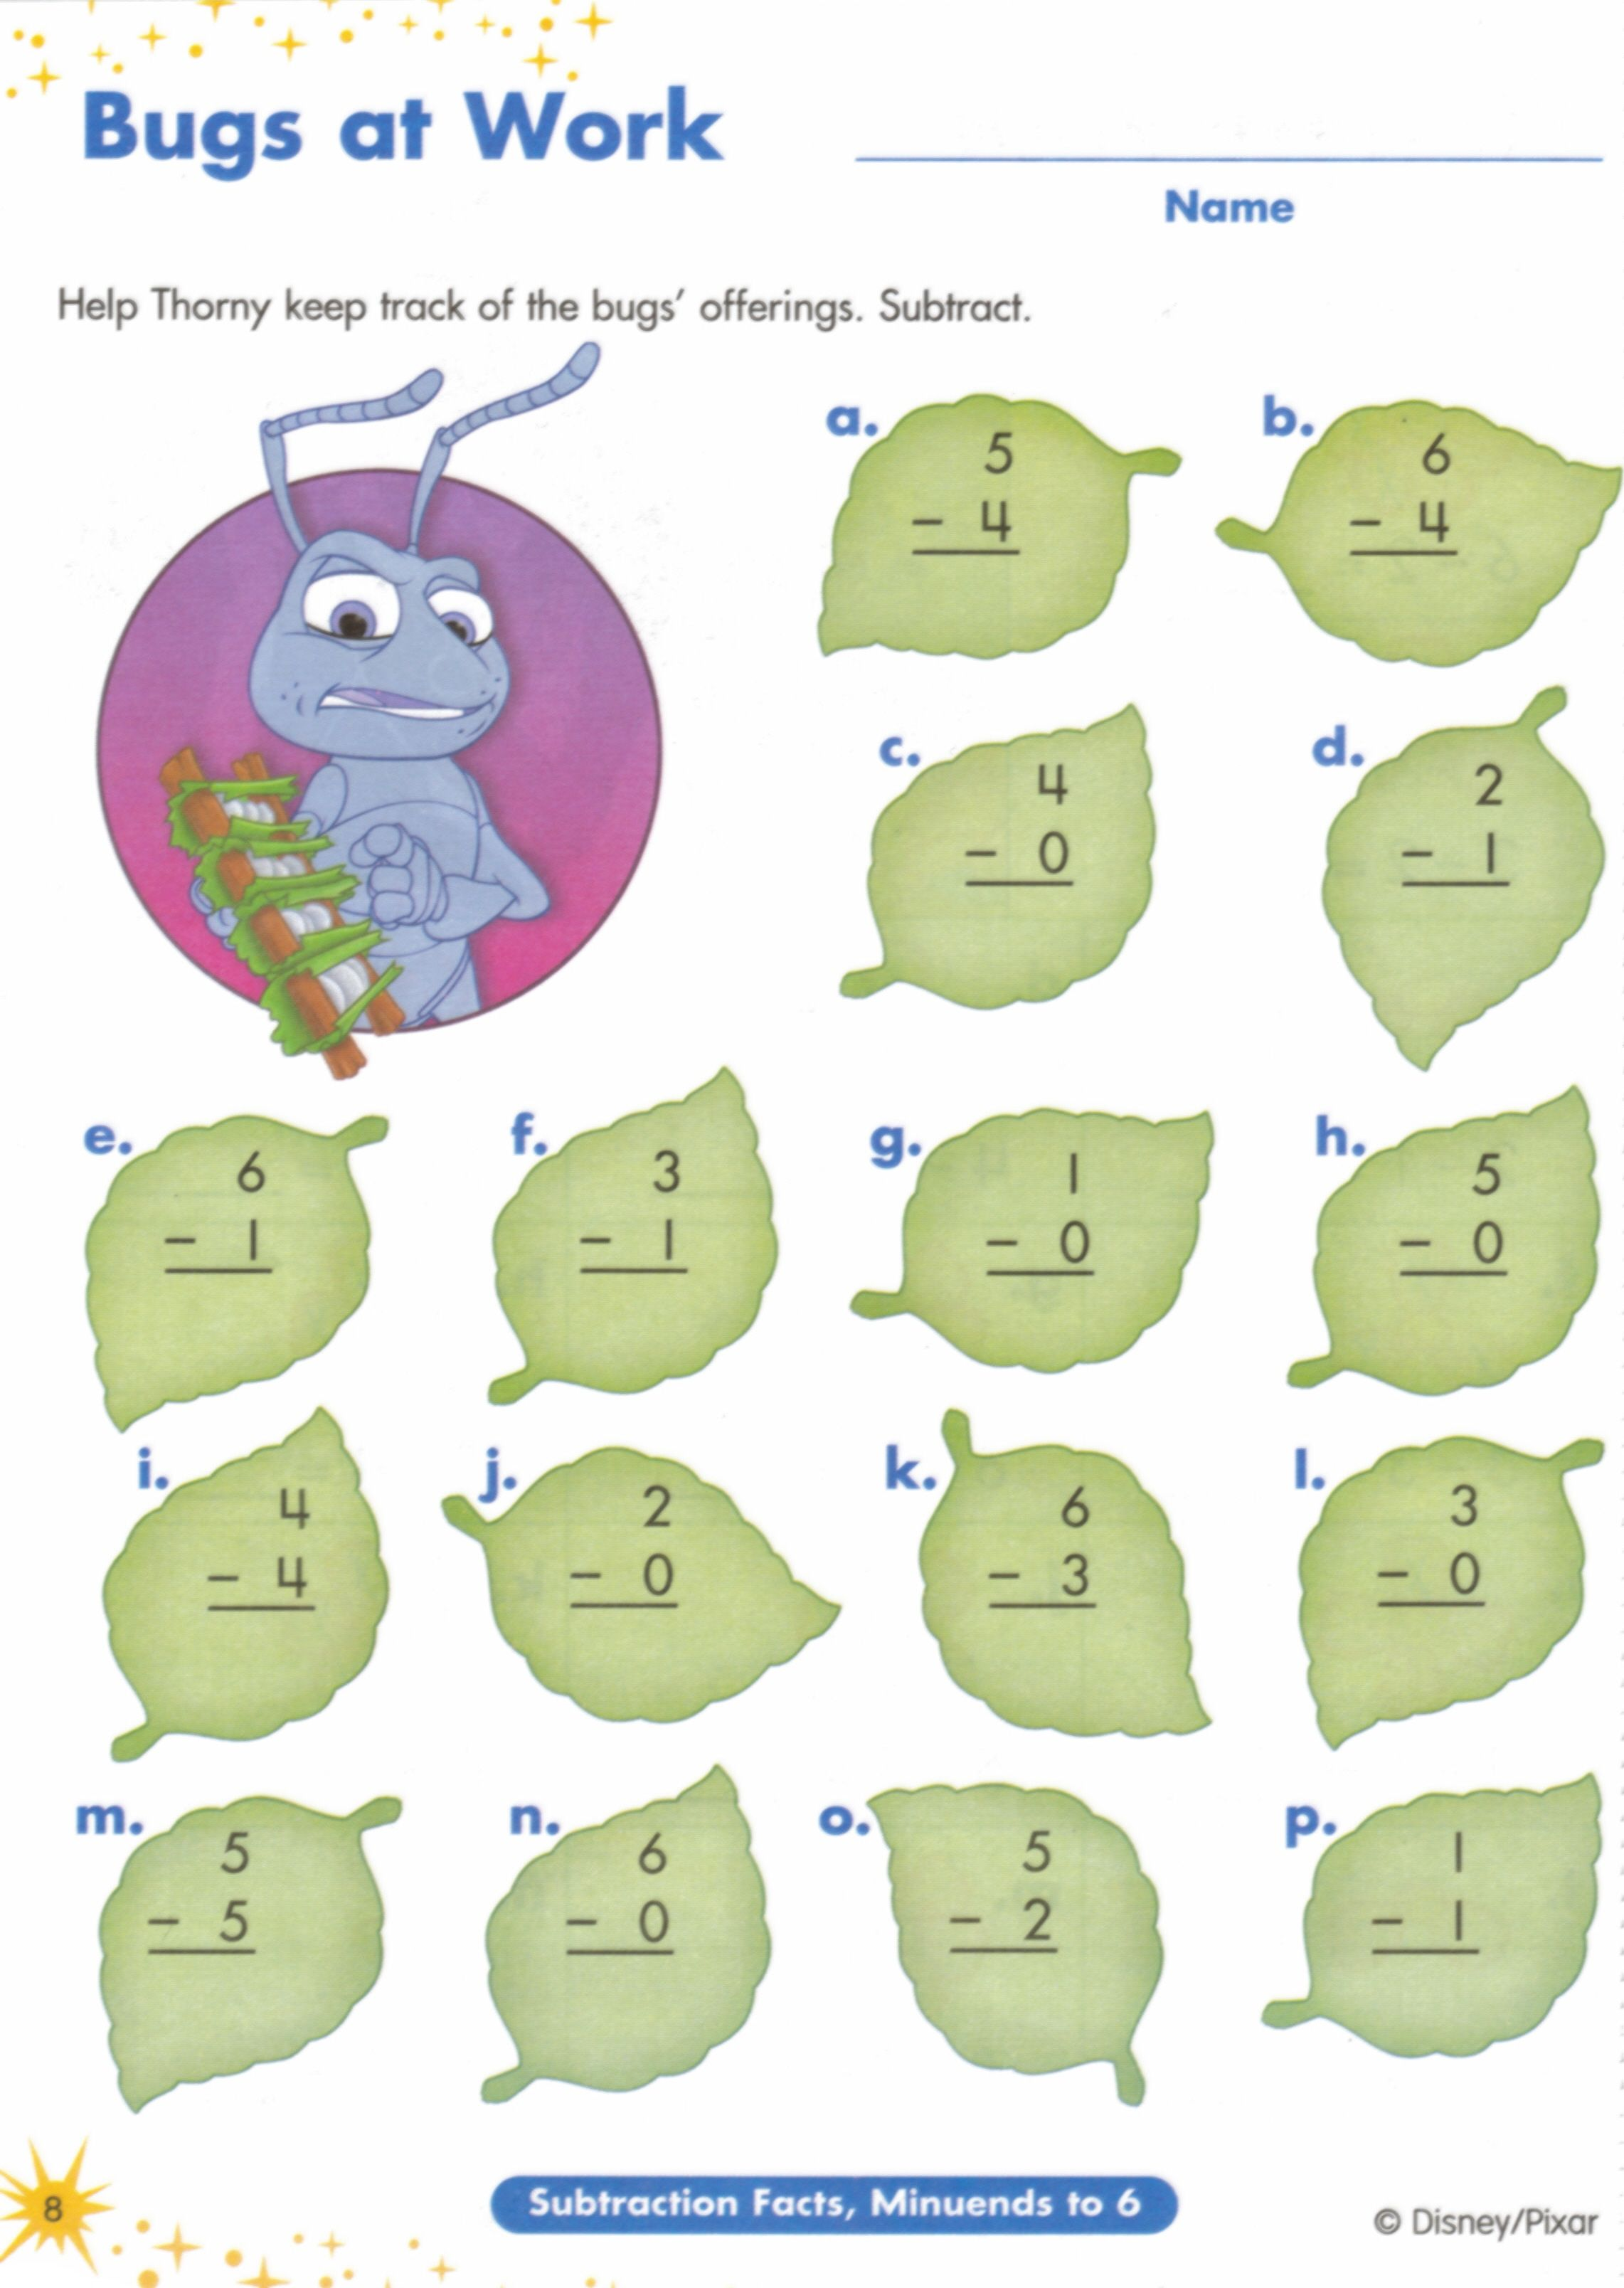 Weirdmailus  Surprising  Images About Worksheets On Pinterest  Fun Facts For Kids  With Outstanding  Images About Worksheets On Pinterest  Fun Facts For Kids Earth Day Worksheets And Jungles With Adorable Life Cycle Of A Flowering Plant Worksheet Also Free First Grade Printable Worksheets In Addition Relationship Building Worksheets And Th Grade Music Worksheets As Well As Form  Adjustments Worksheet Additionally Am Or Pm Worksheets From Pinterestcom With Weirdmailus  Outstanding  Images About Worksheets On Pinterest  Fun Facts For Kids  With Adorable  Images About Worksheets On Pinterest  Fun Facts For Kids Earth Day Worksheets And Jungles And Surprising Life Cycle Of A Flowering Plant Worksheet Also Free First Grade Printable Worksheets In Addition Relationship Building Worksheets From Pinterestcom